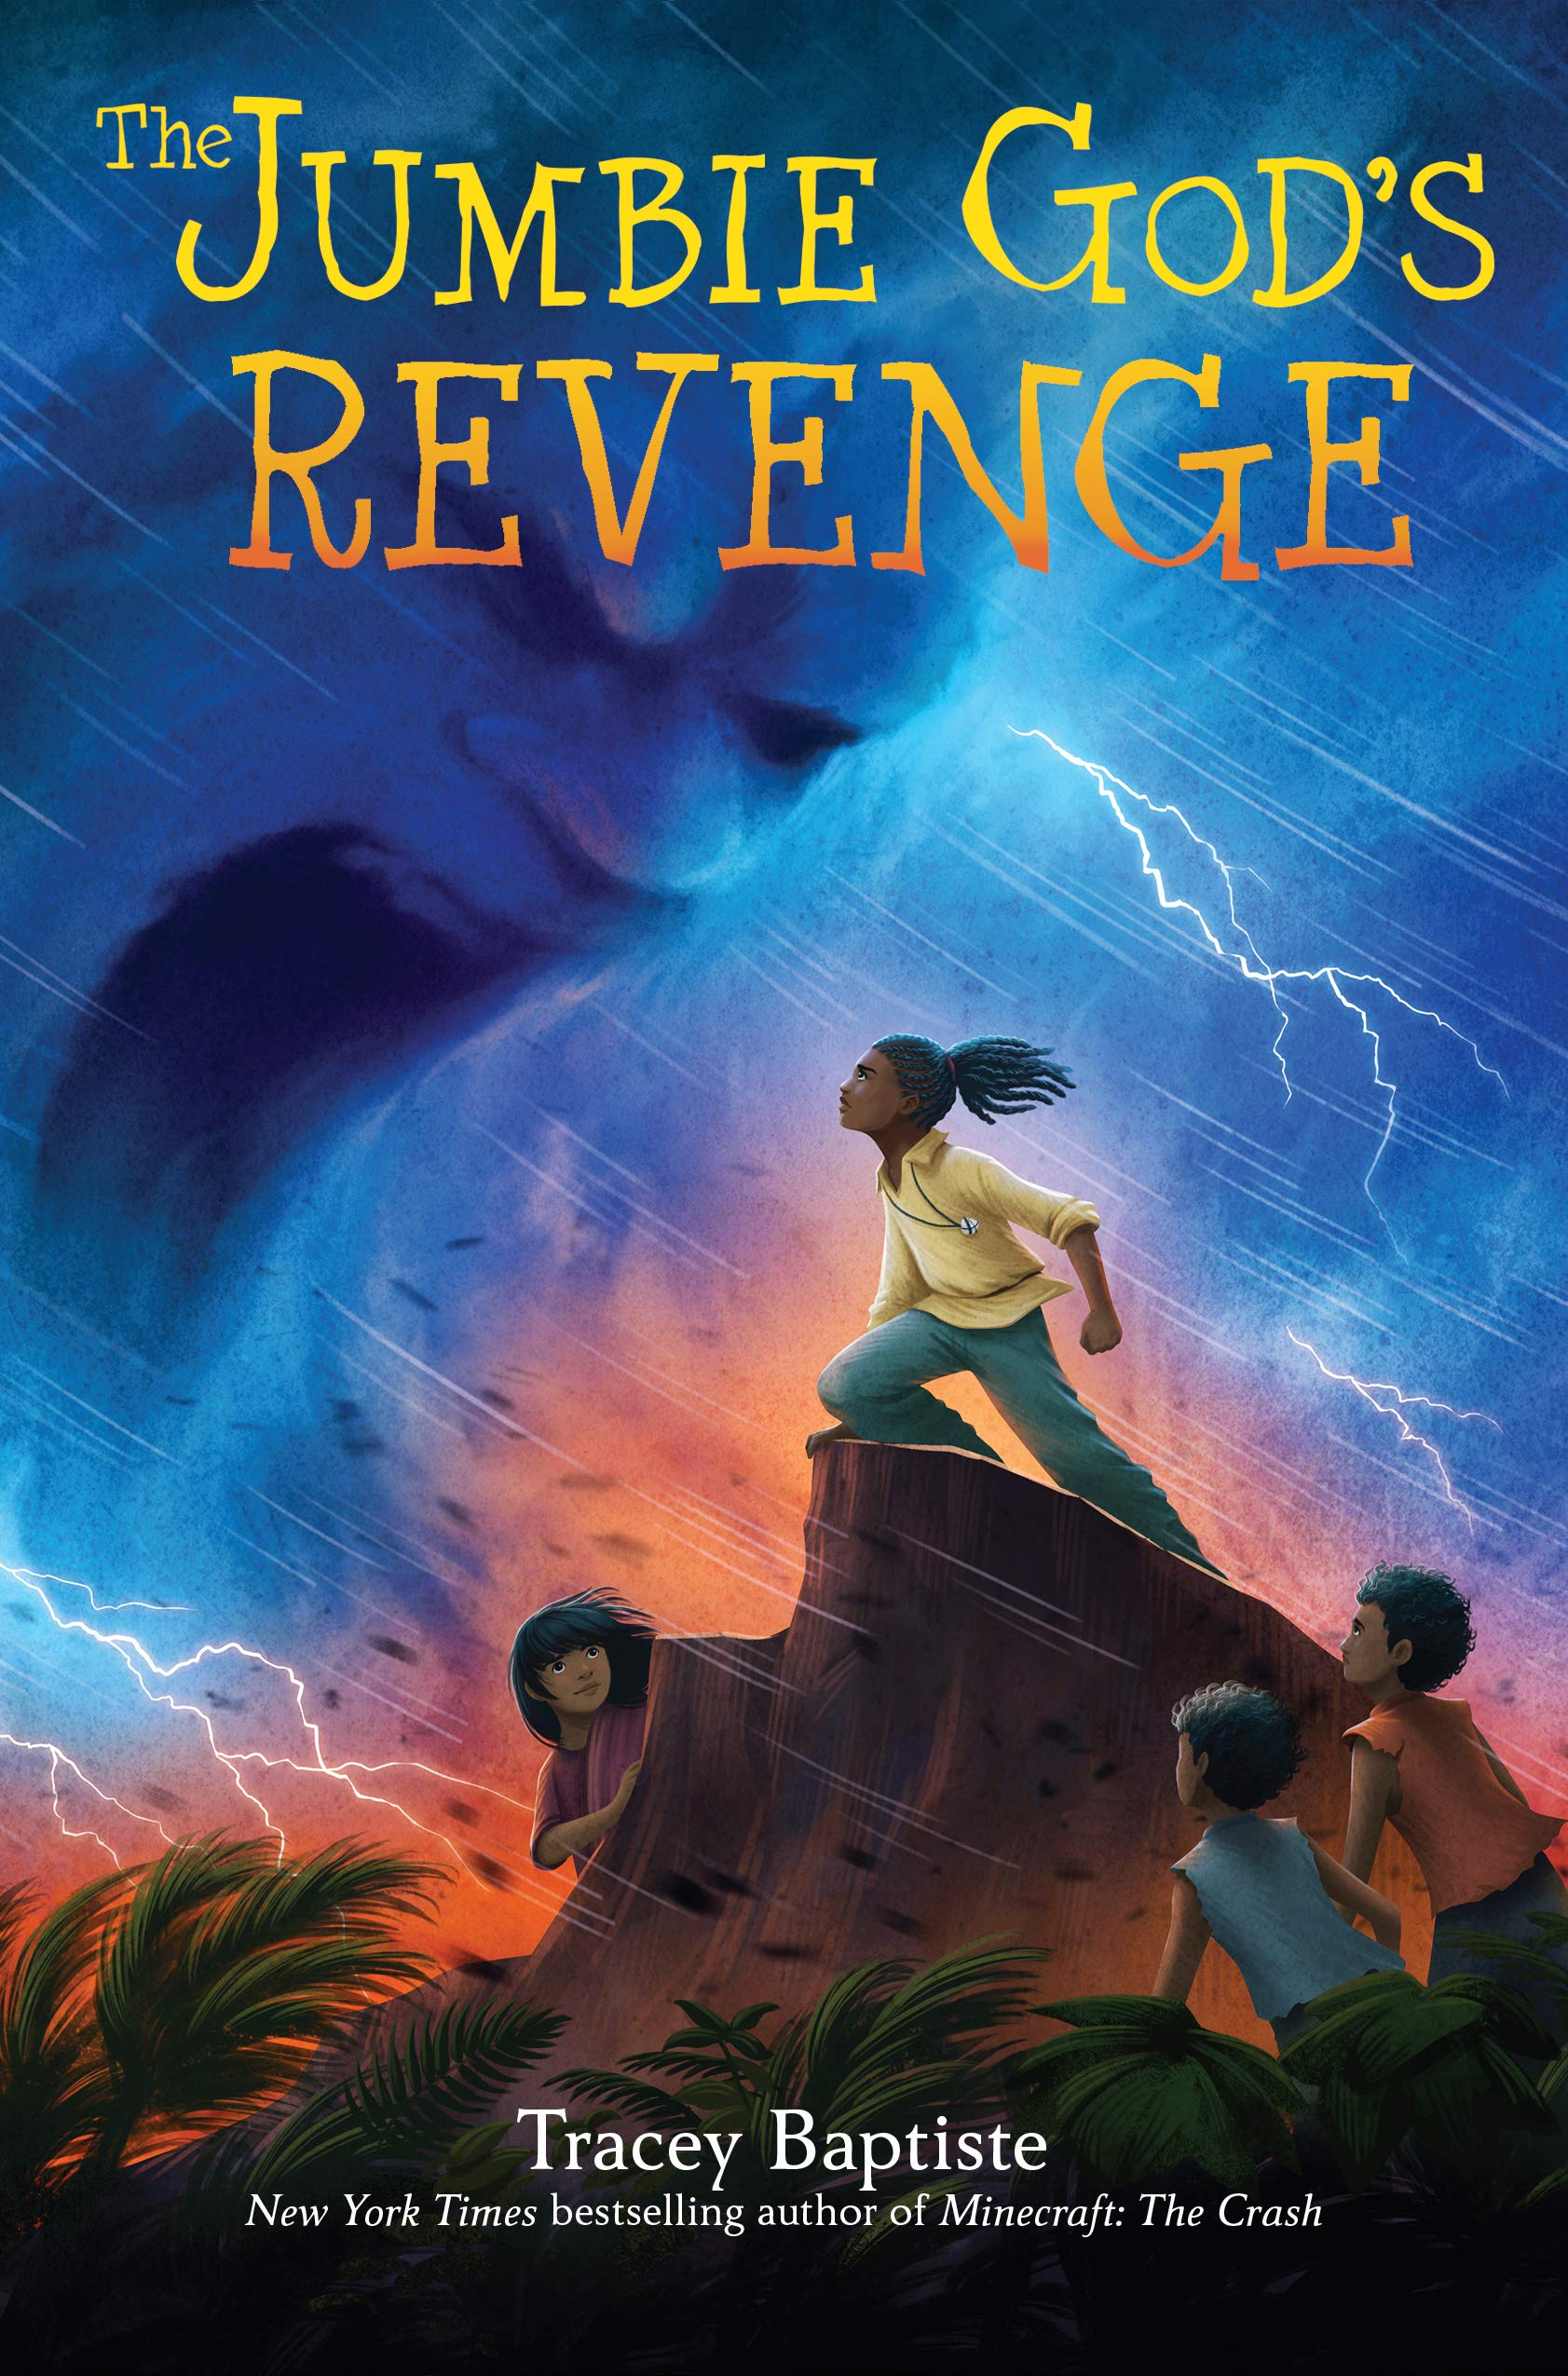 Cover of  The Jumbie God's Revenge , by Tracey Baptiste